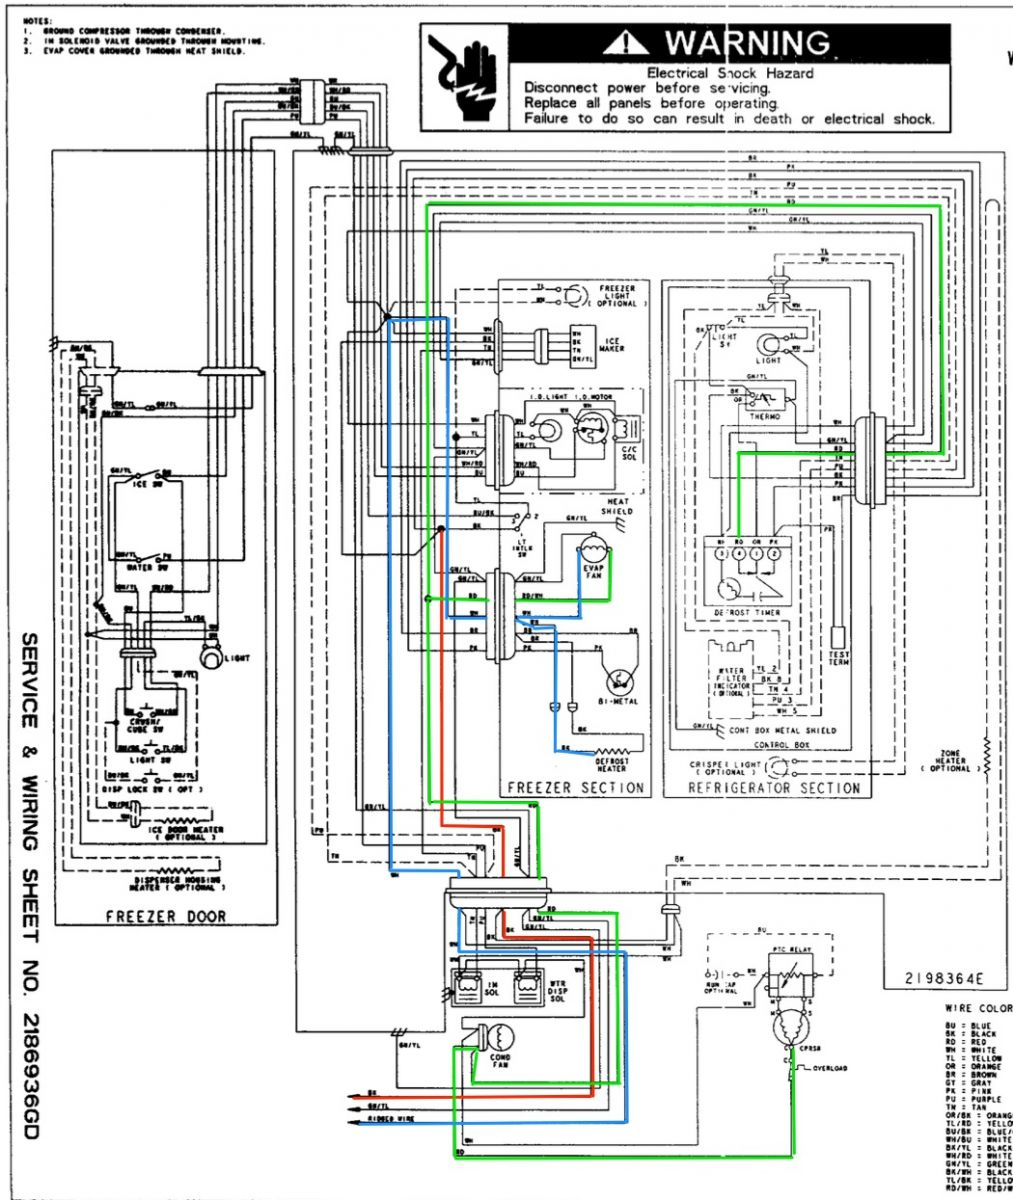 whirlpool ed25rfxfw01 refrigerator wiring diagram the rh appliantology org appliance repair wiring diagrams Kenmore Appliance Wiring Diagrams